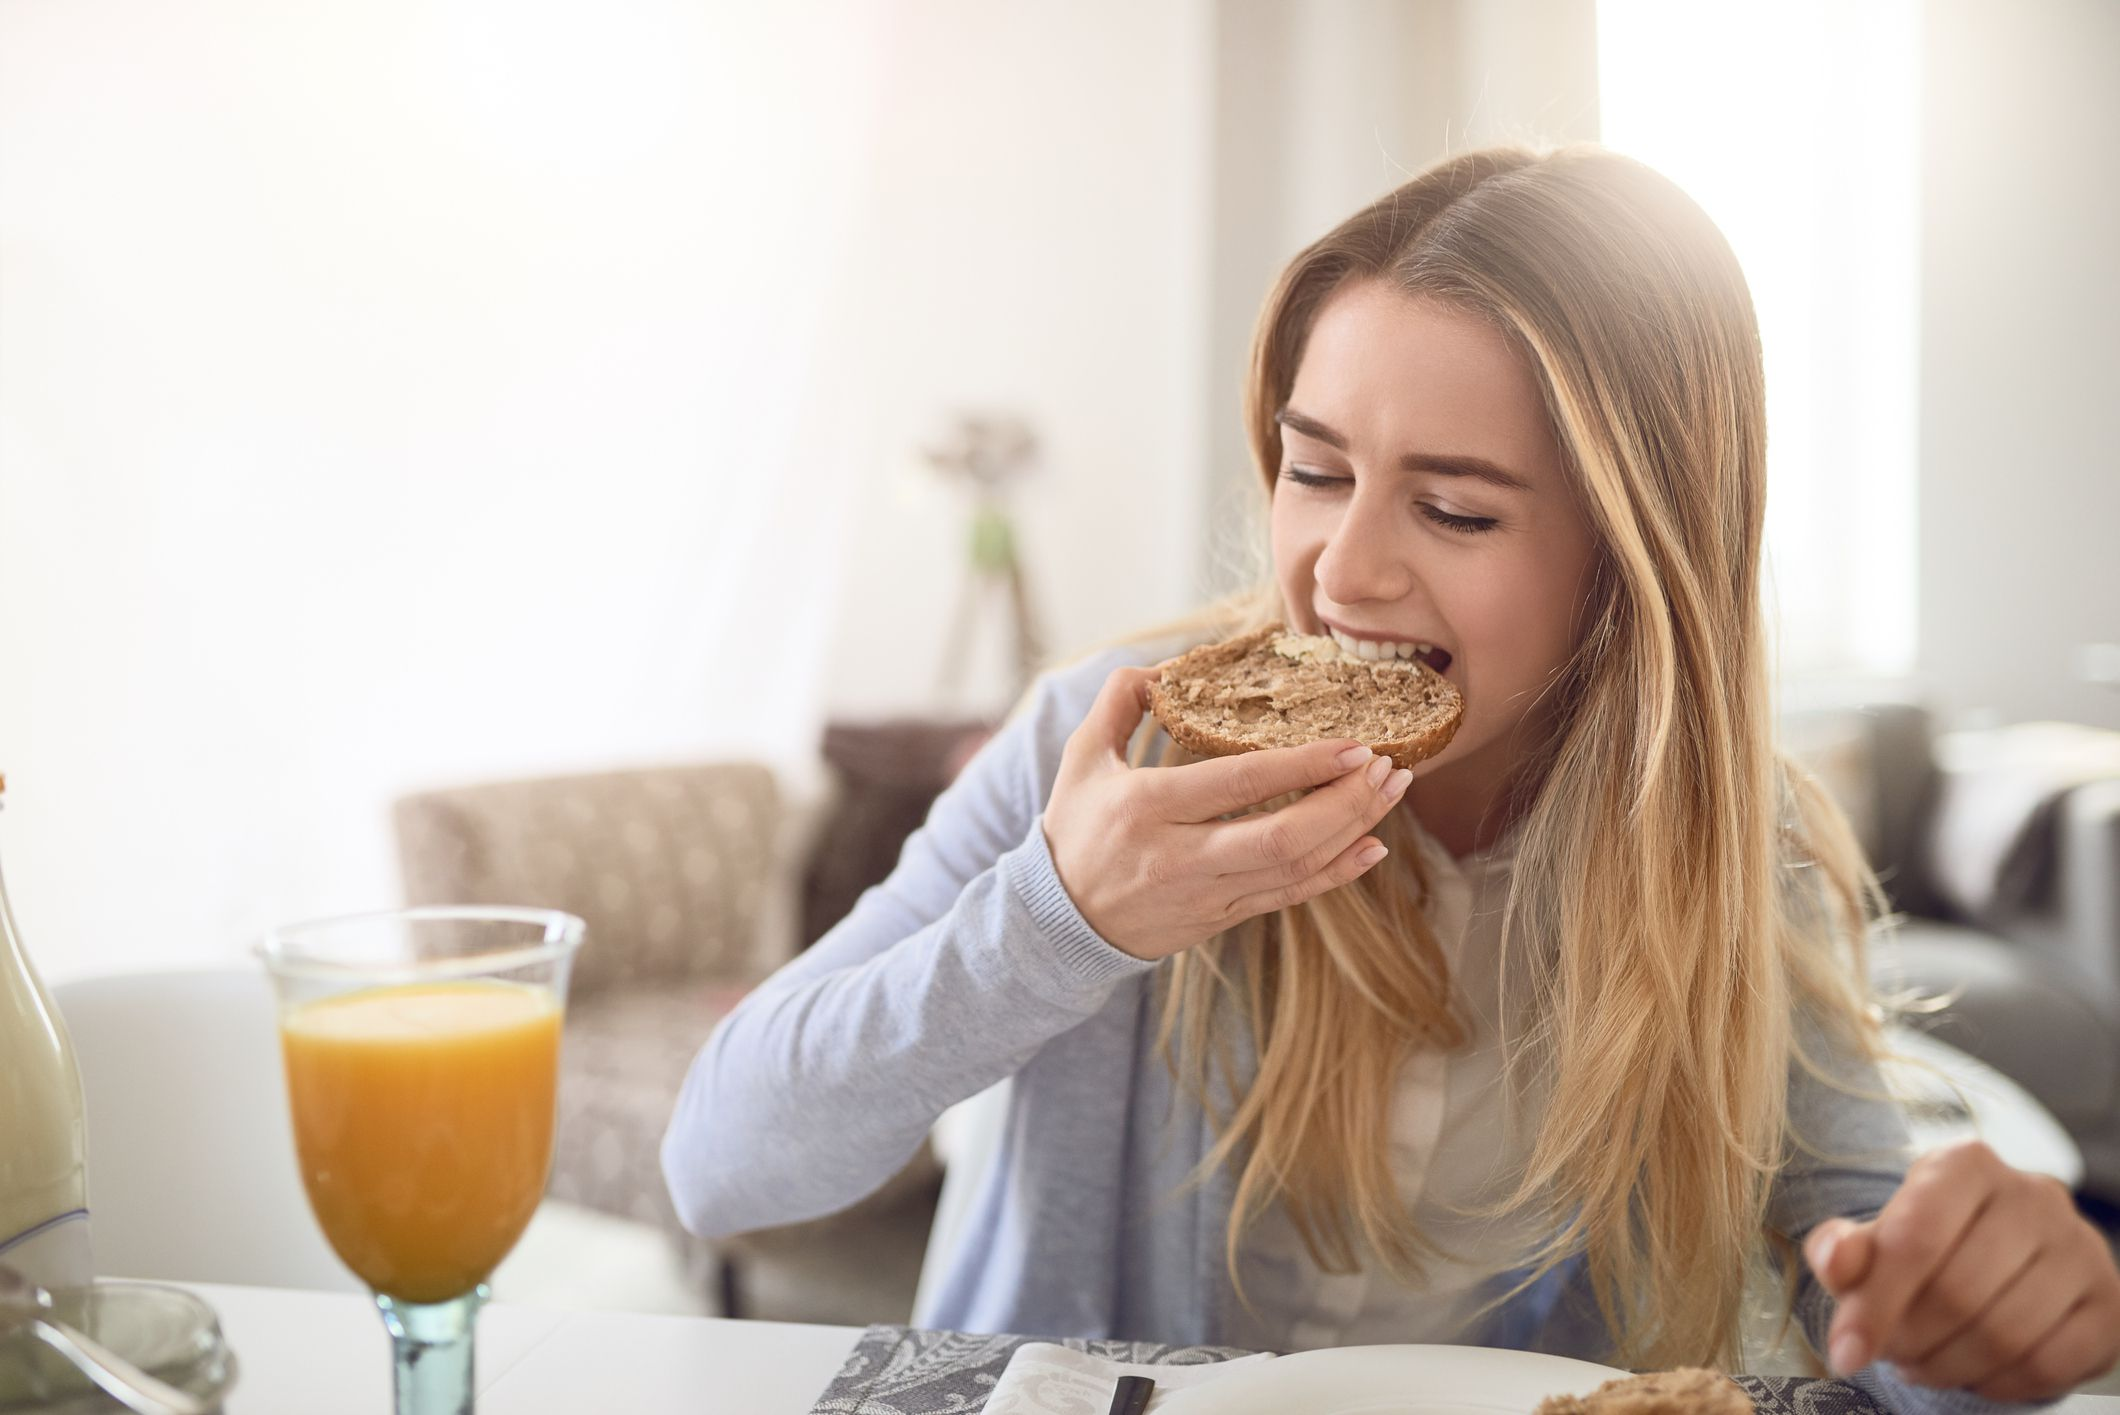 Find Out Why Some Are Fasting to Slim Down